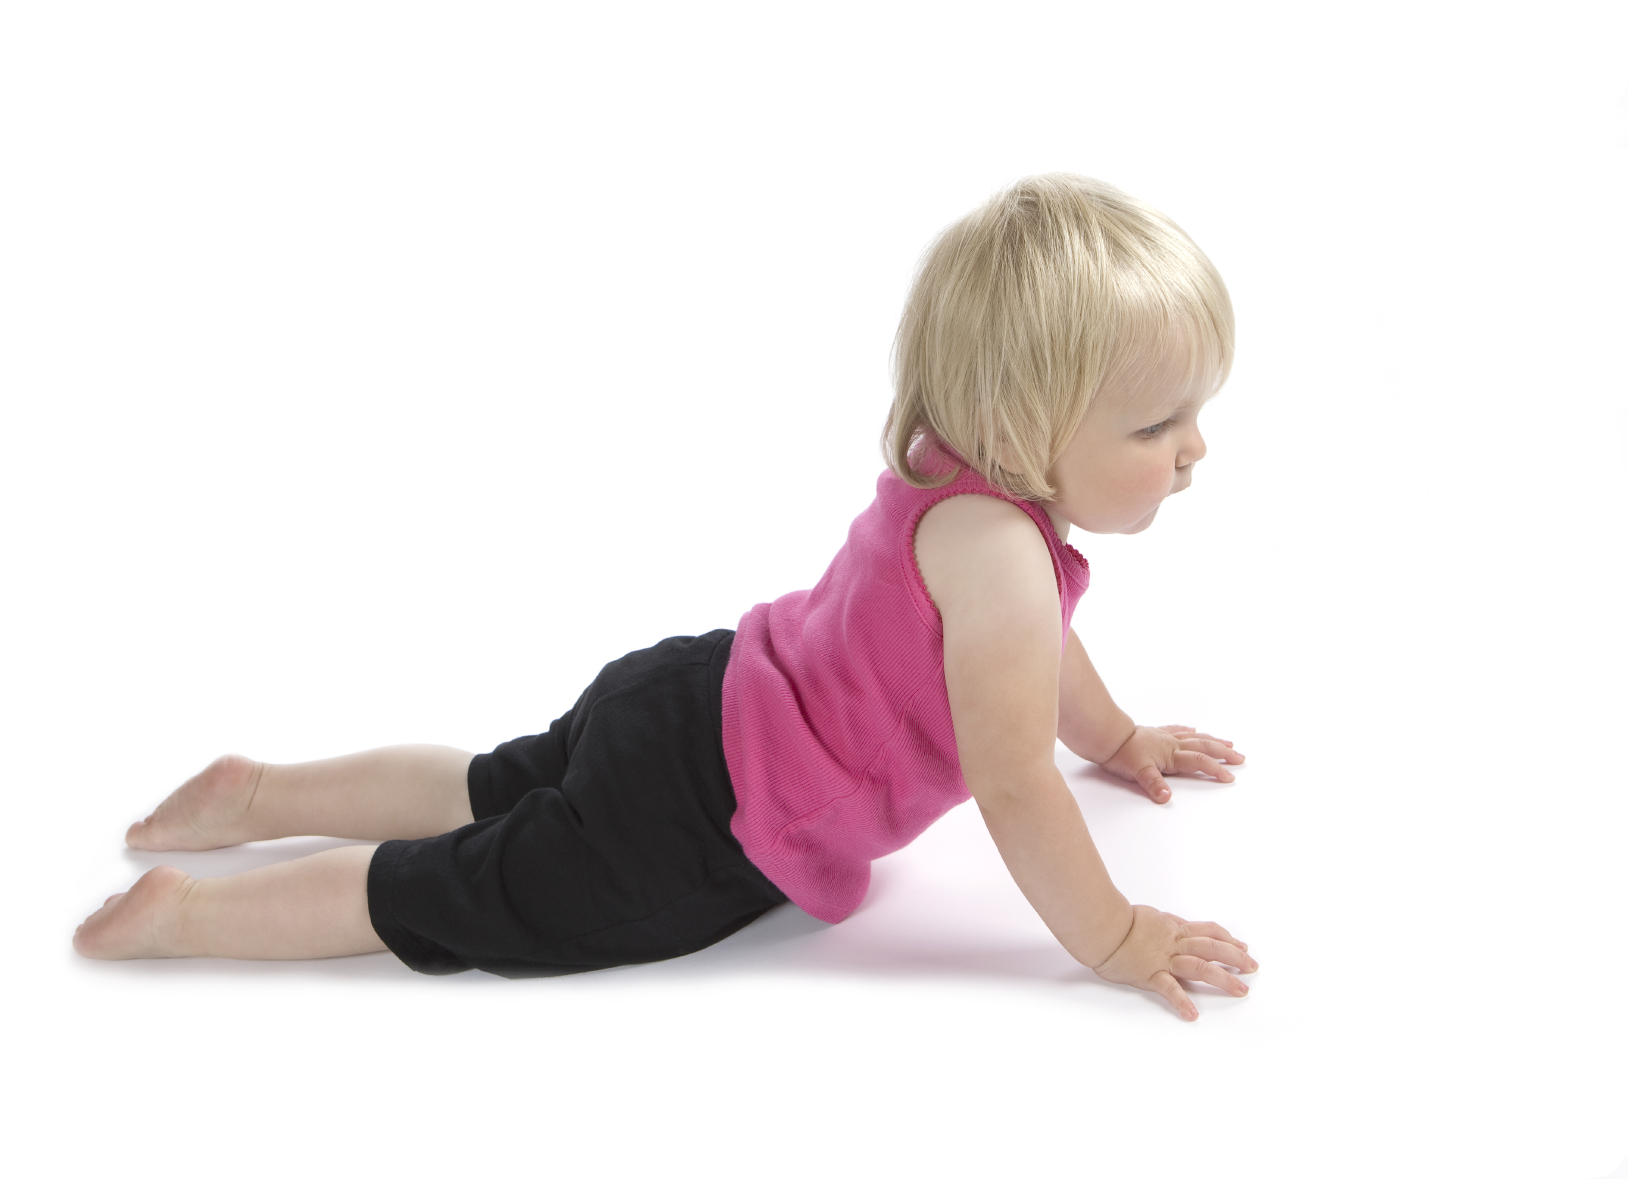 To Crawl or Not to Crawl? That is the Question.